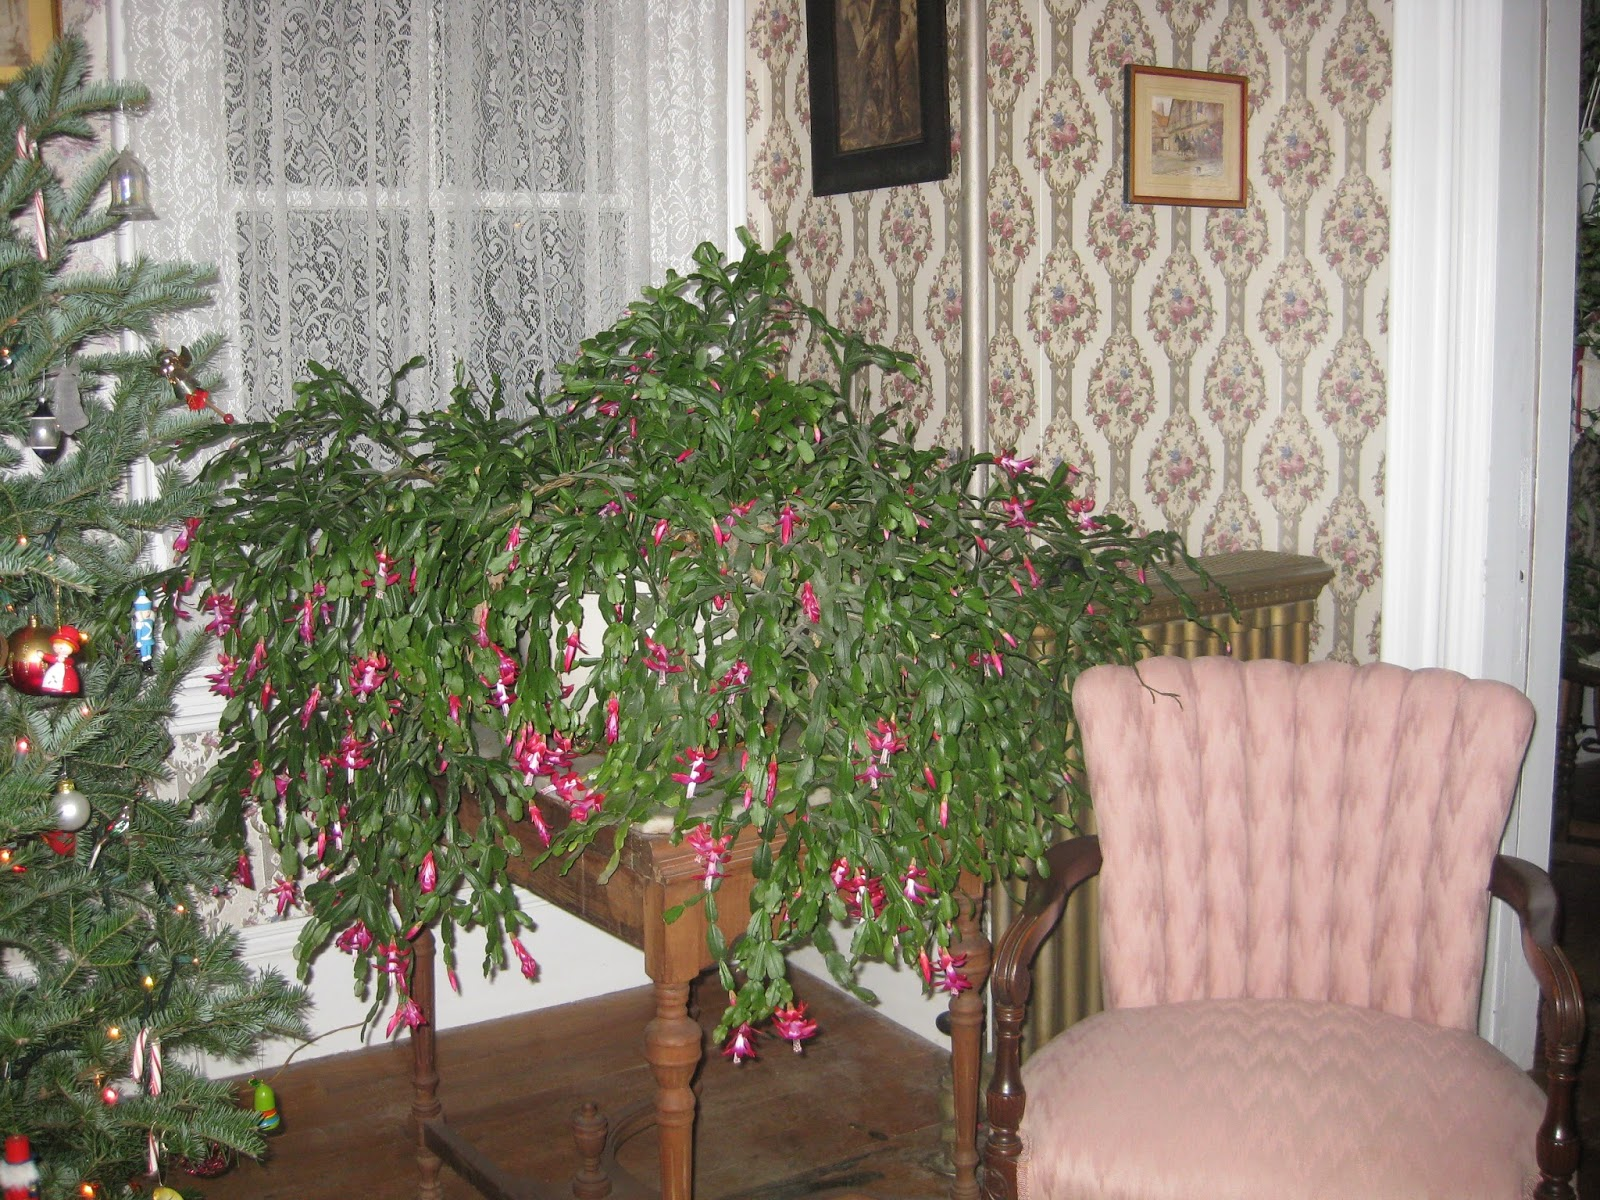 christmas cactus plant leaves turning red